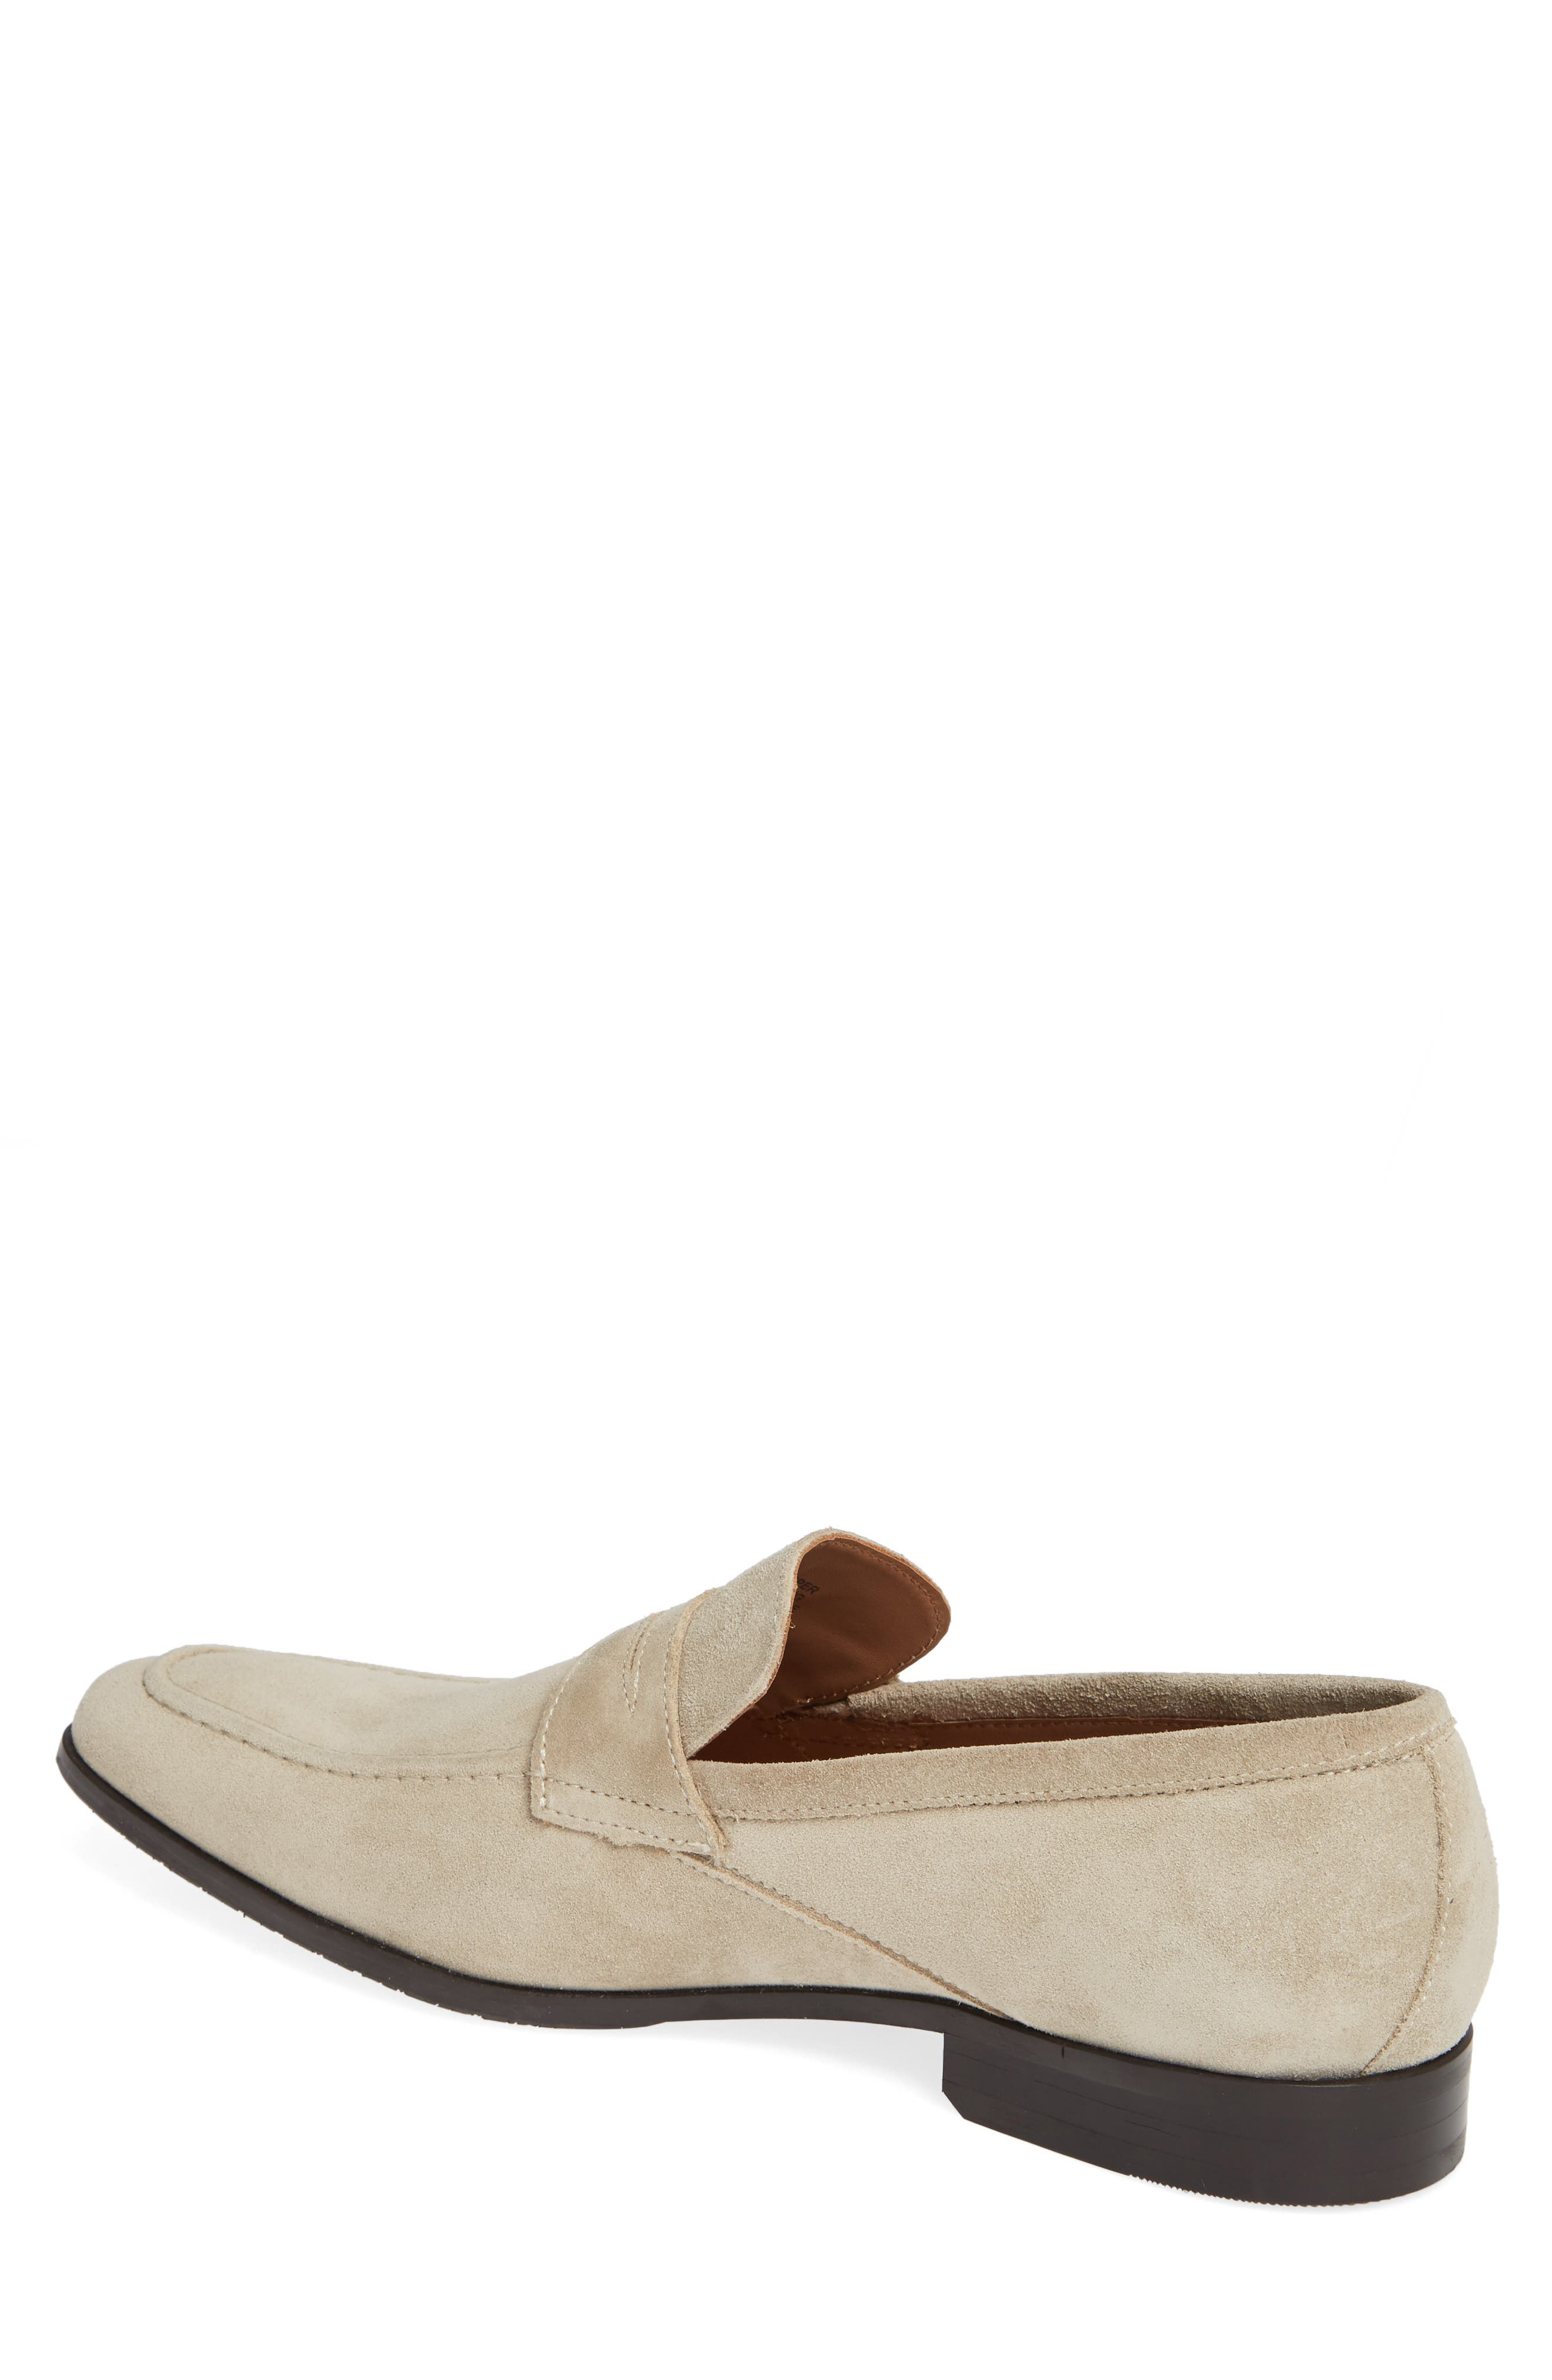 Nicasio Apron Toe Penny Loafer,                             Alternate thumbnail 2, color,                             SAND SUEDE